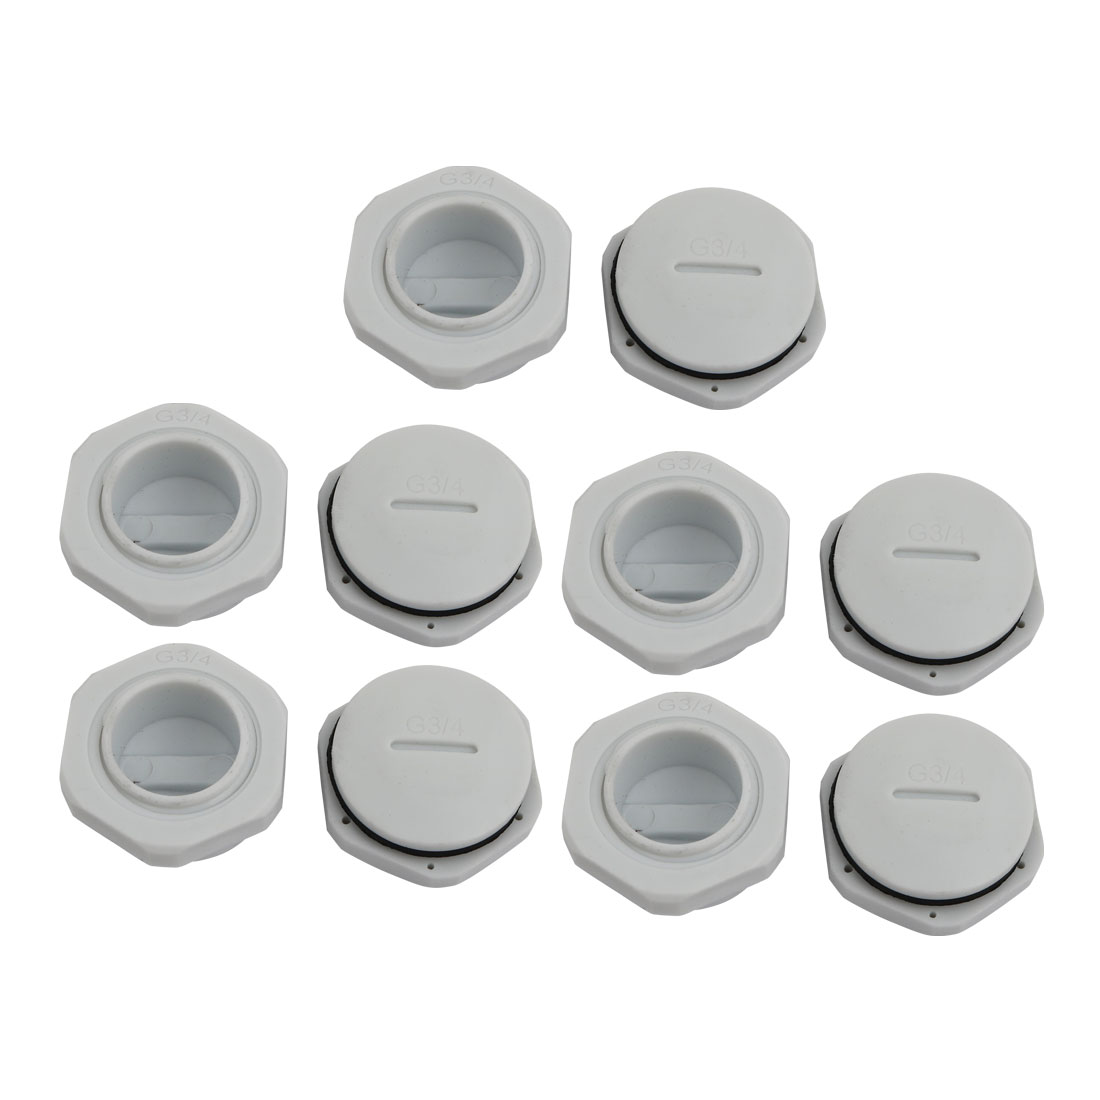 10pcs GLW-G 3/4 Nylon Threaded Cable Gland Cap Round Cover Gray w Washer